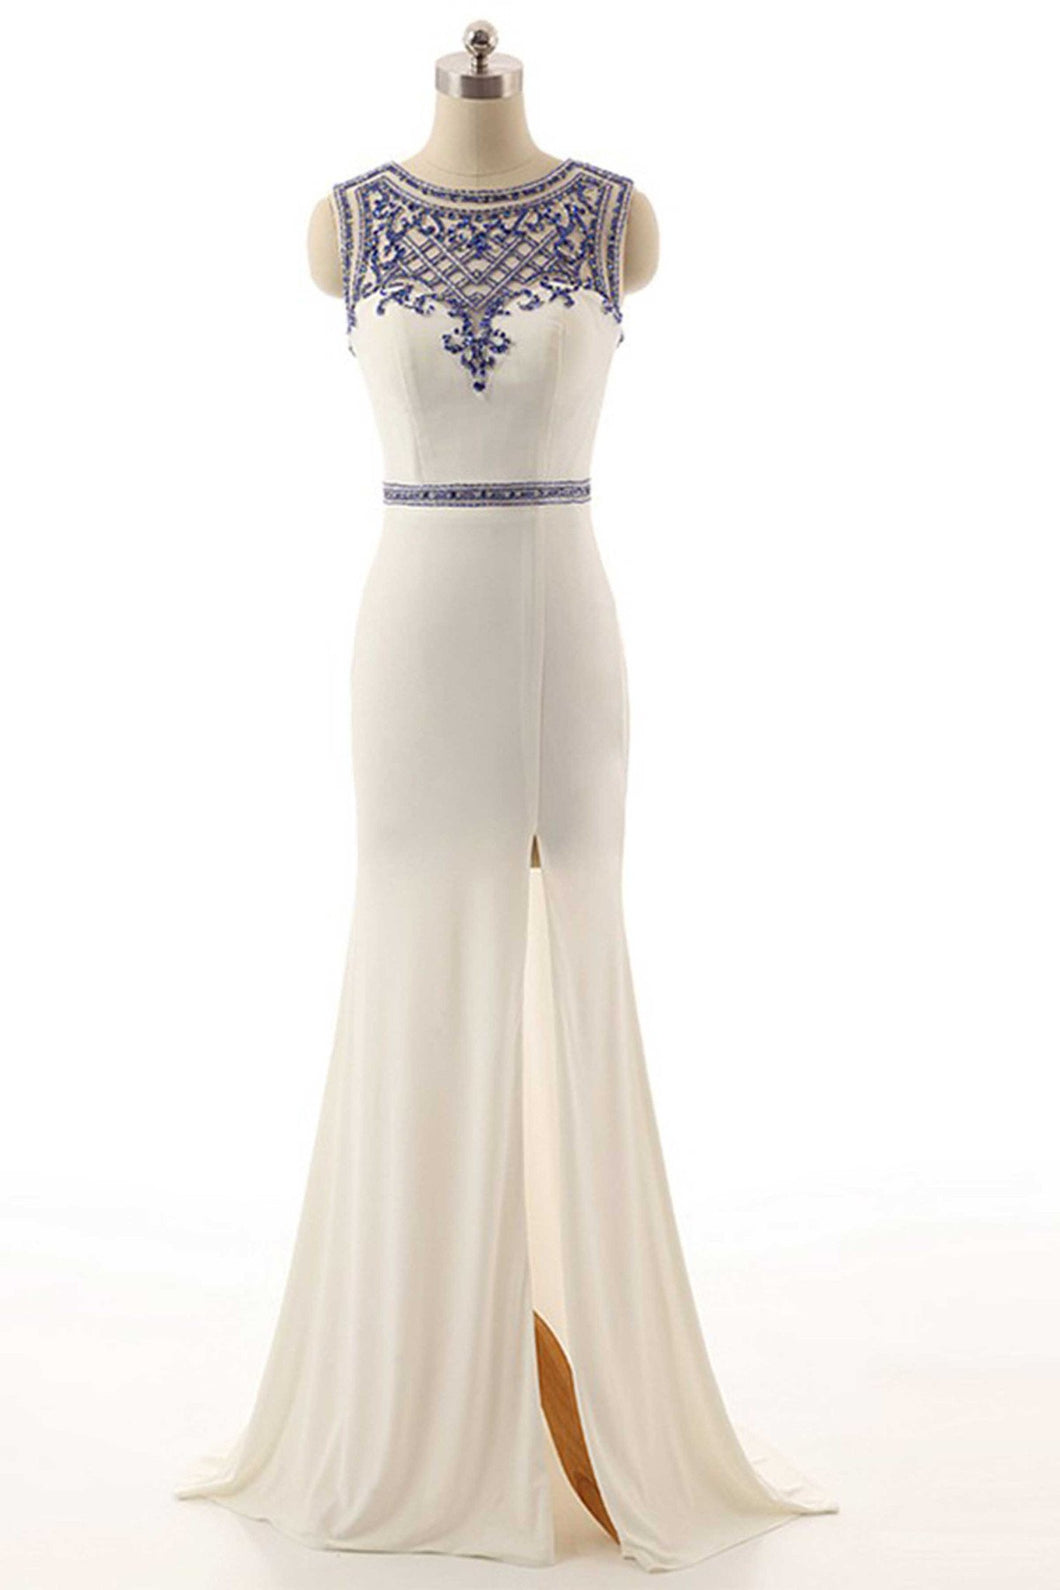 Sweet 16 Dresses | Elegant white chiffon beading long dresses,handmade evening dresses